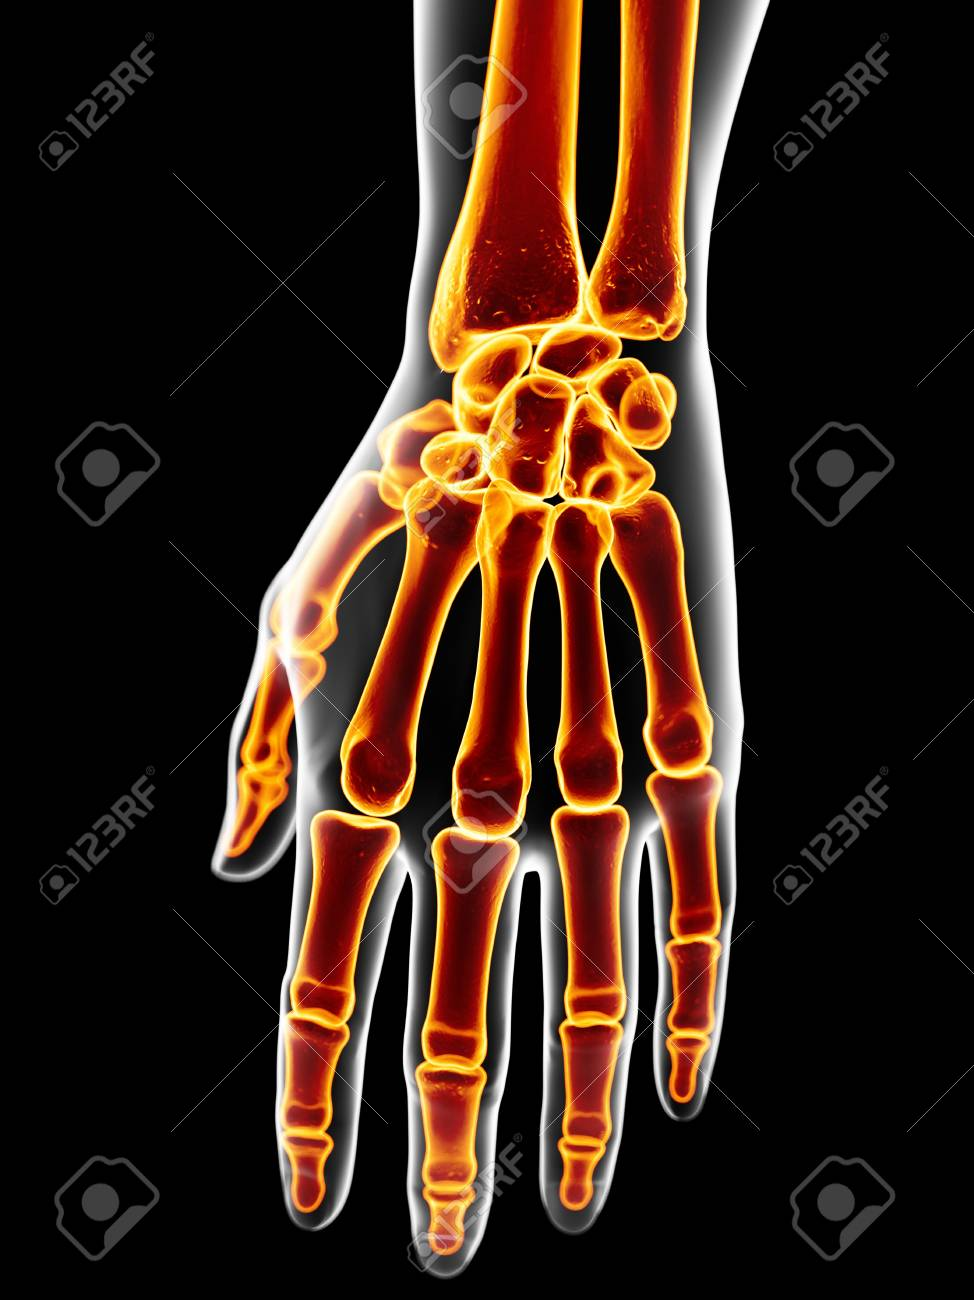 Human Hand Bones, Artwork Stock Photo, Picture And Royalty Free ...